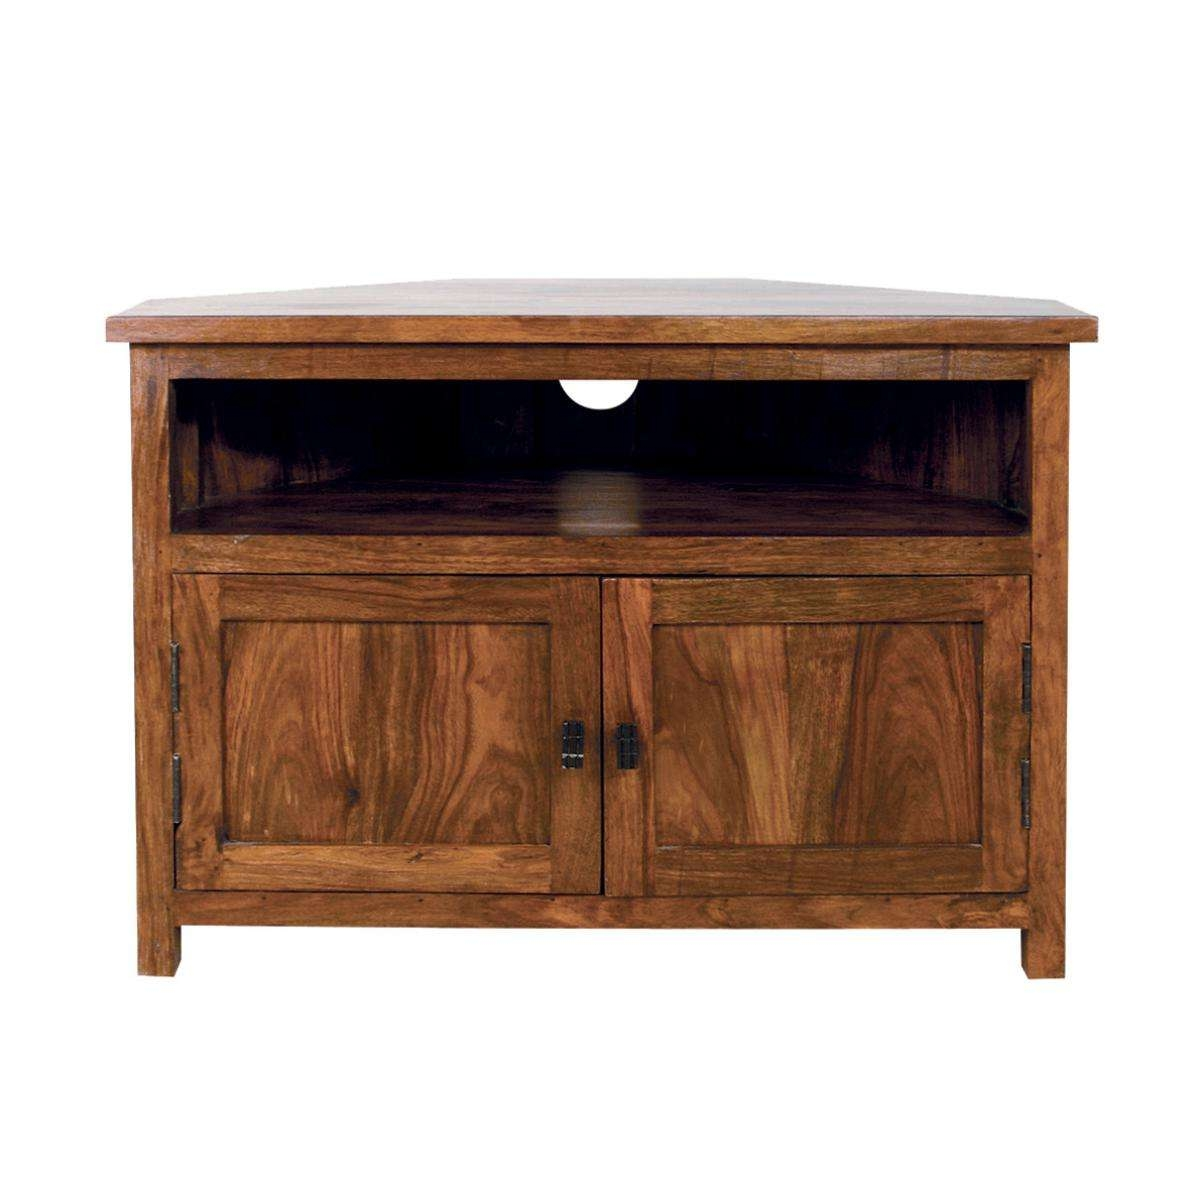 Mallani Sheesham Solid Wood, Contemporary Corner Tv Unit | Ebay Pertaining To Solid Wood Corner Tv Stands (View 14 of 20)